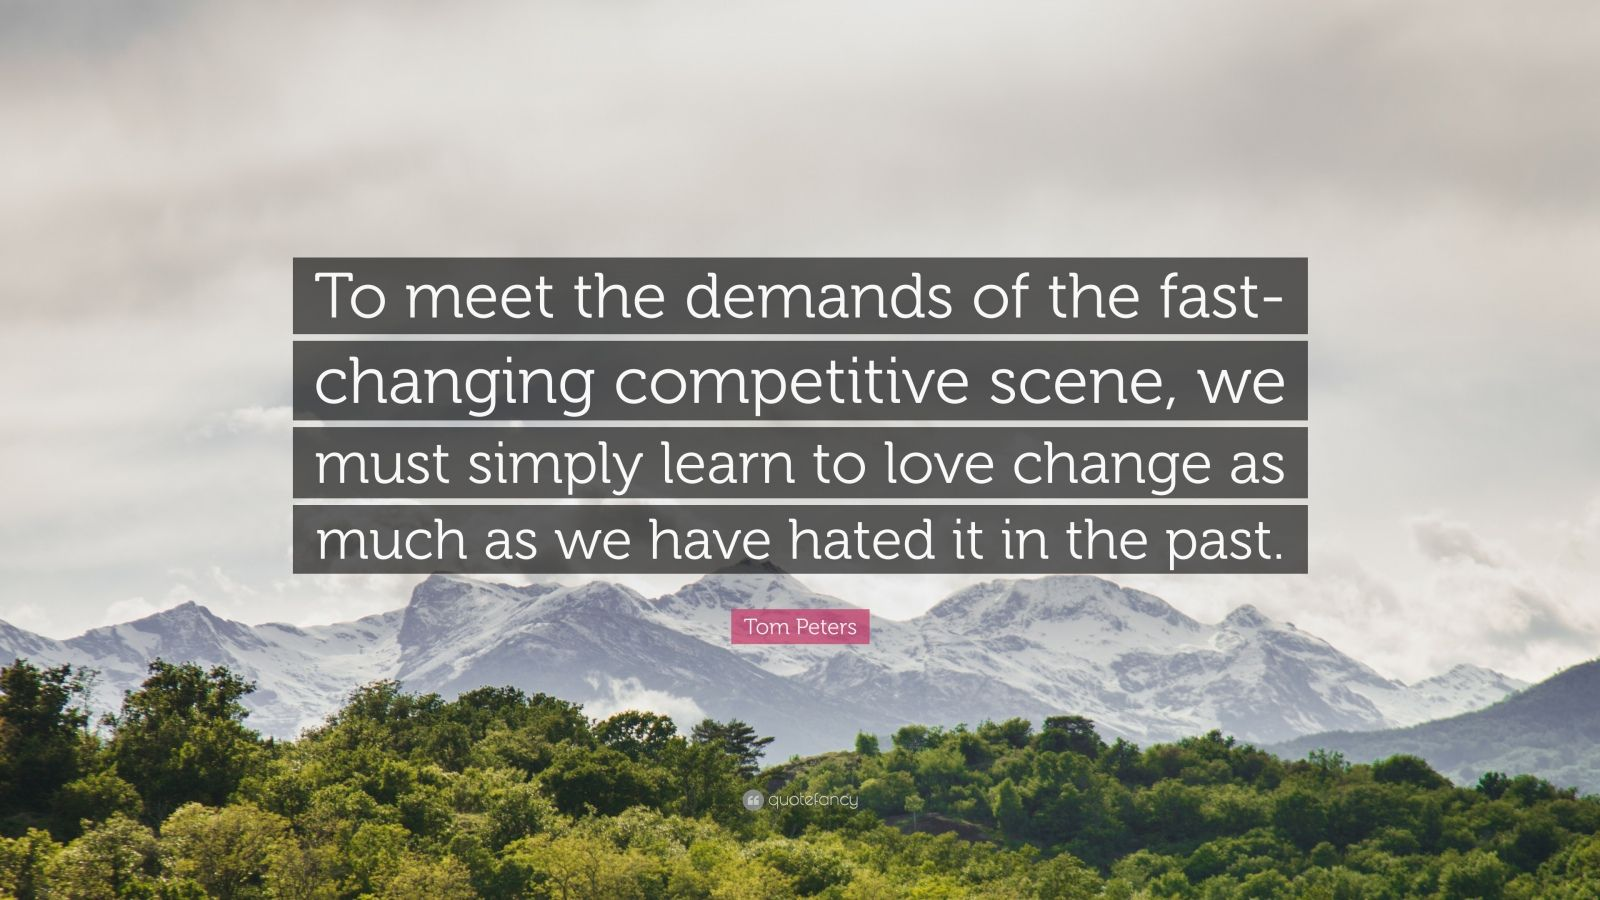 """Tom Peters Quote: """"To meet the demands of the fast-changing competitive scene, we must simply learn to love change as much as we have hated it in the past."""""""